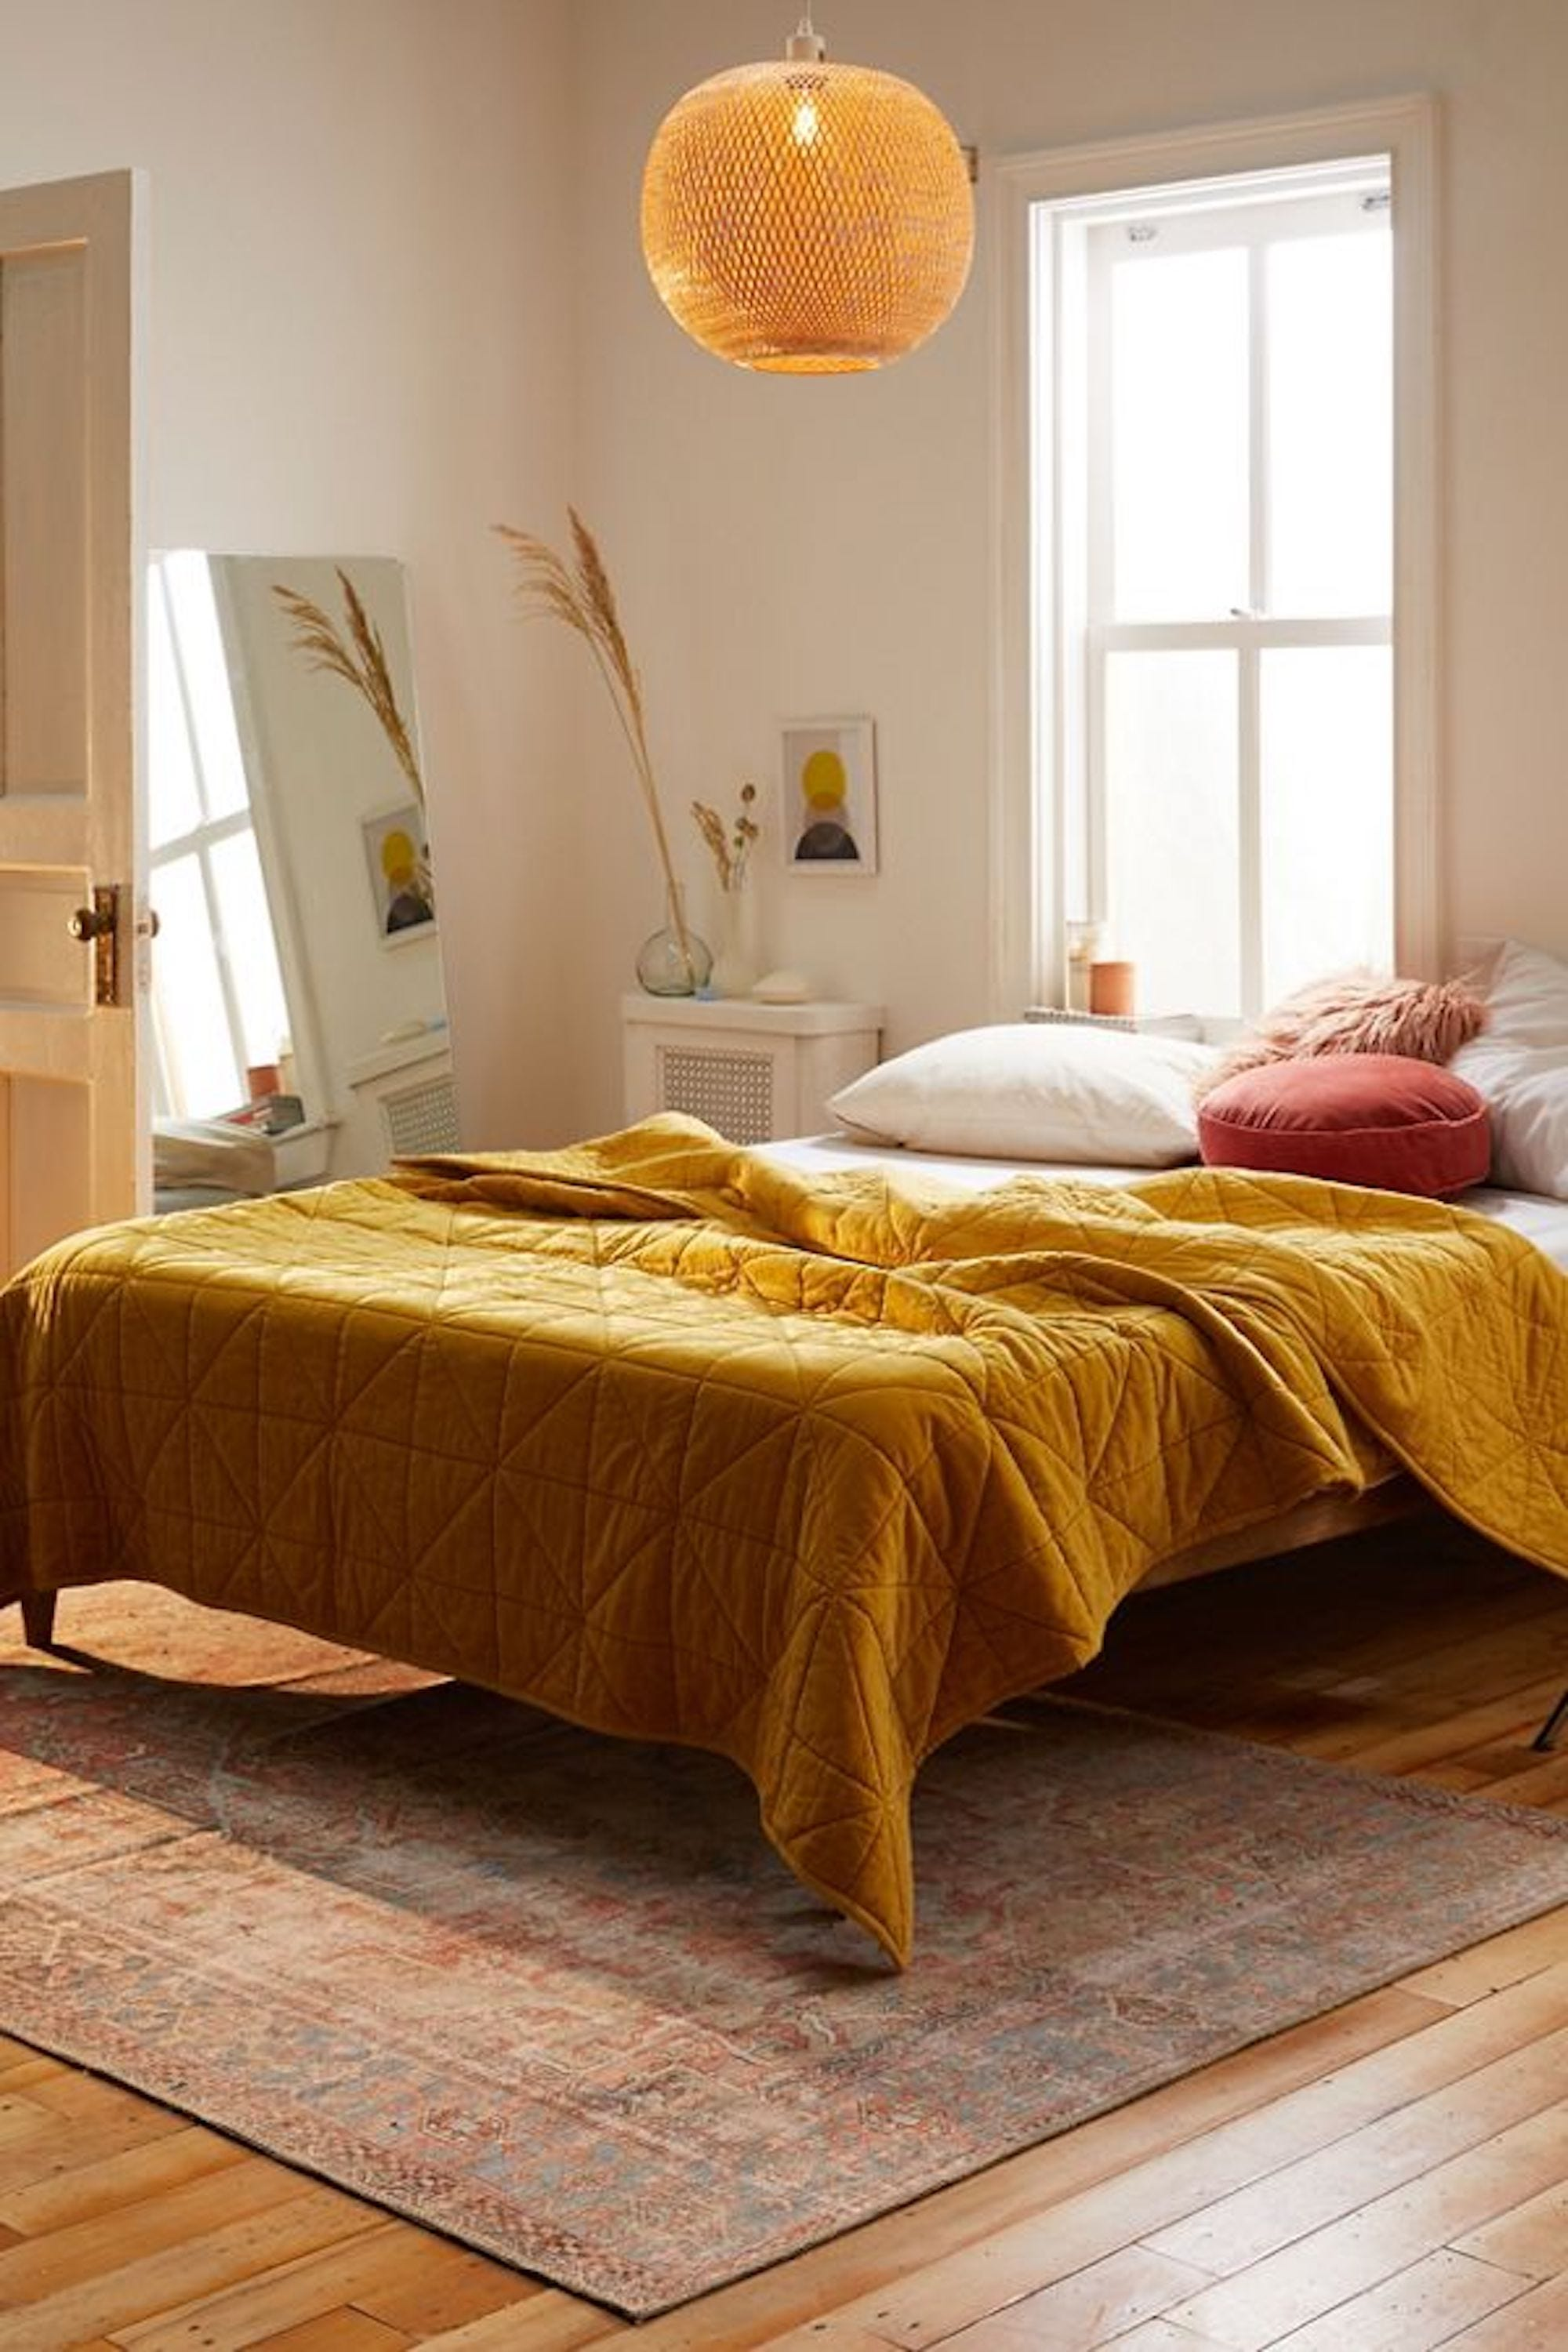 Best Bedroom Colors To Paint Your Room For Better Sleep